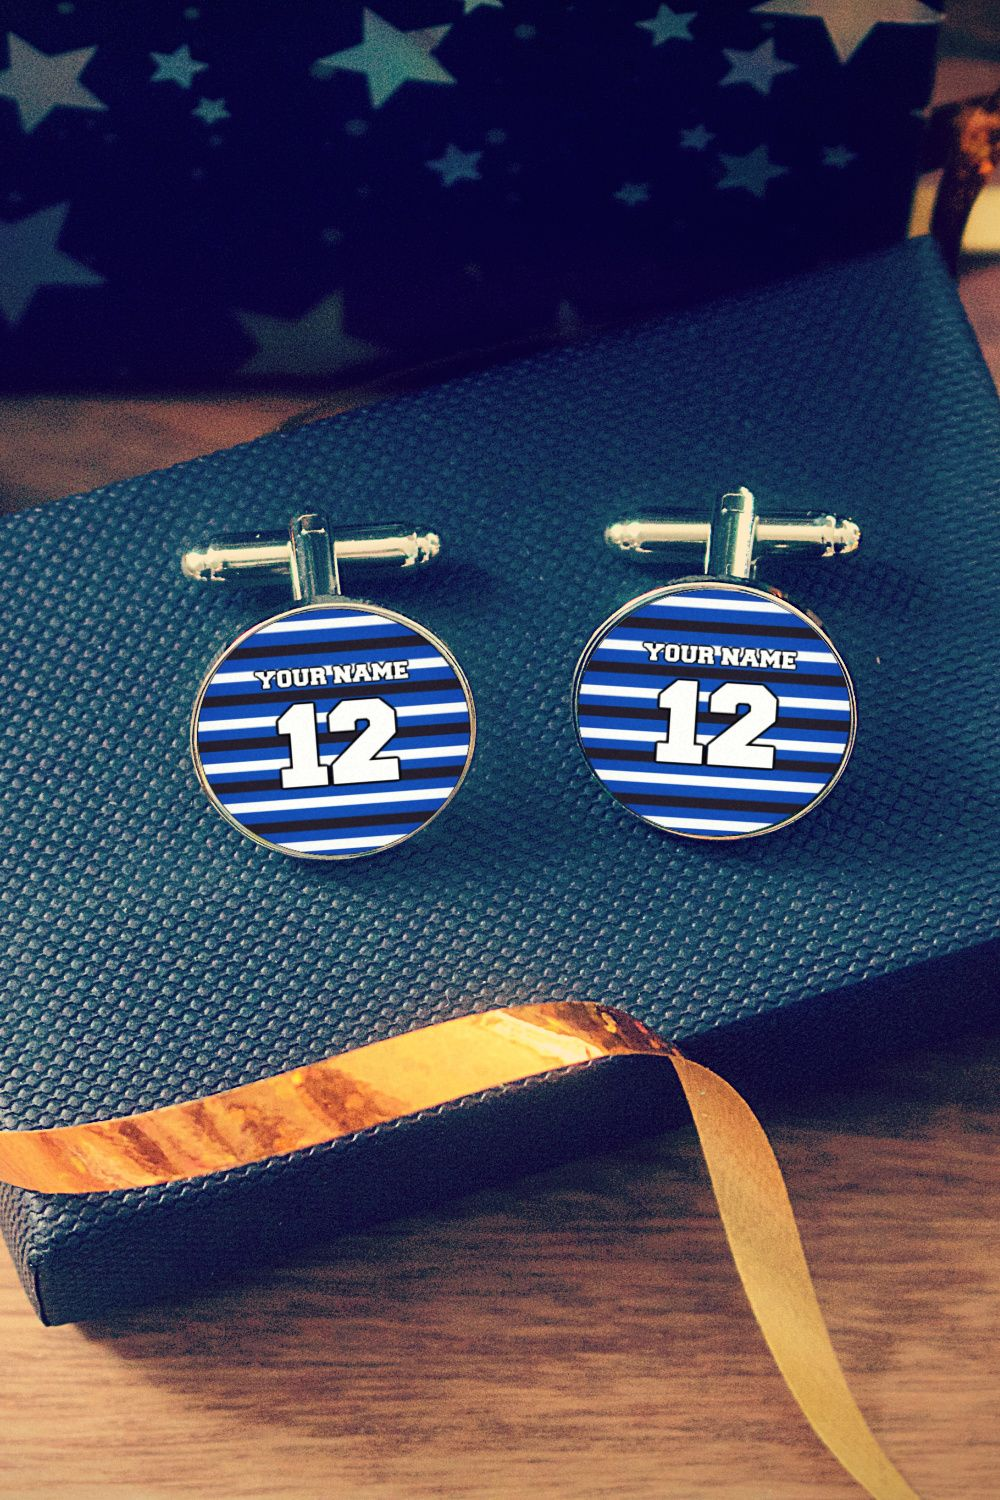 Bath Rugby Cufflinks Personalised Gift For Rugby Fan Christmas Present For Men Premiership Rugby Sports Jersey Your Name Christmas Presents For Men Presents For Men Personalized Gifts